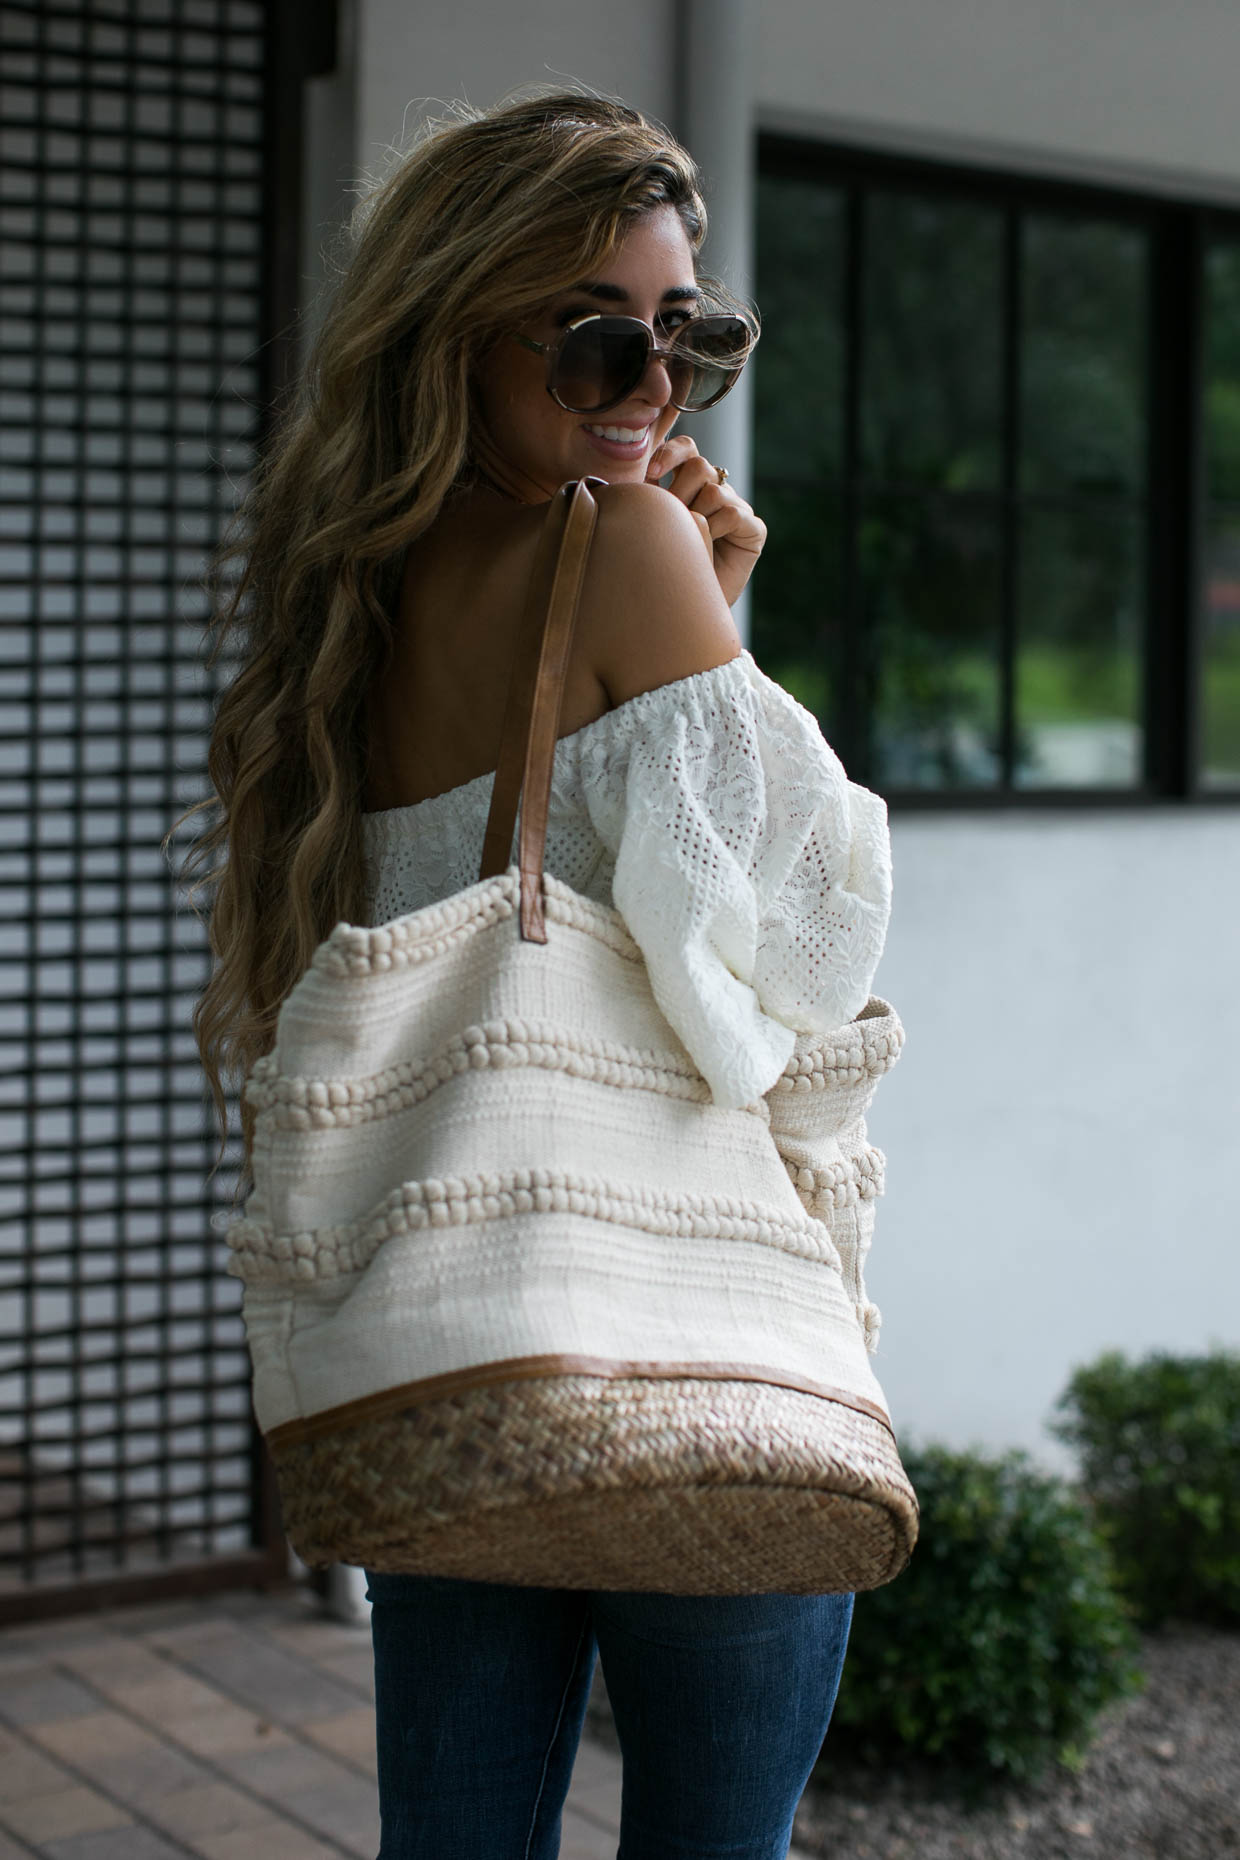 Fashion blogger The Darling Detail wears lace off-the-shoulder top and cropped denim